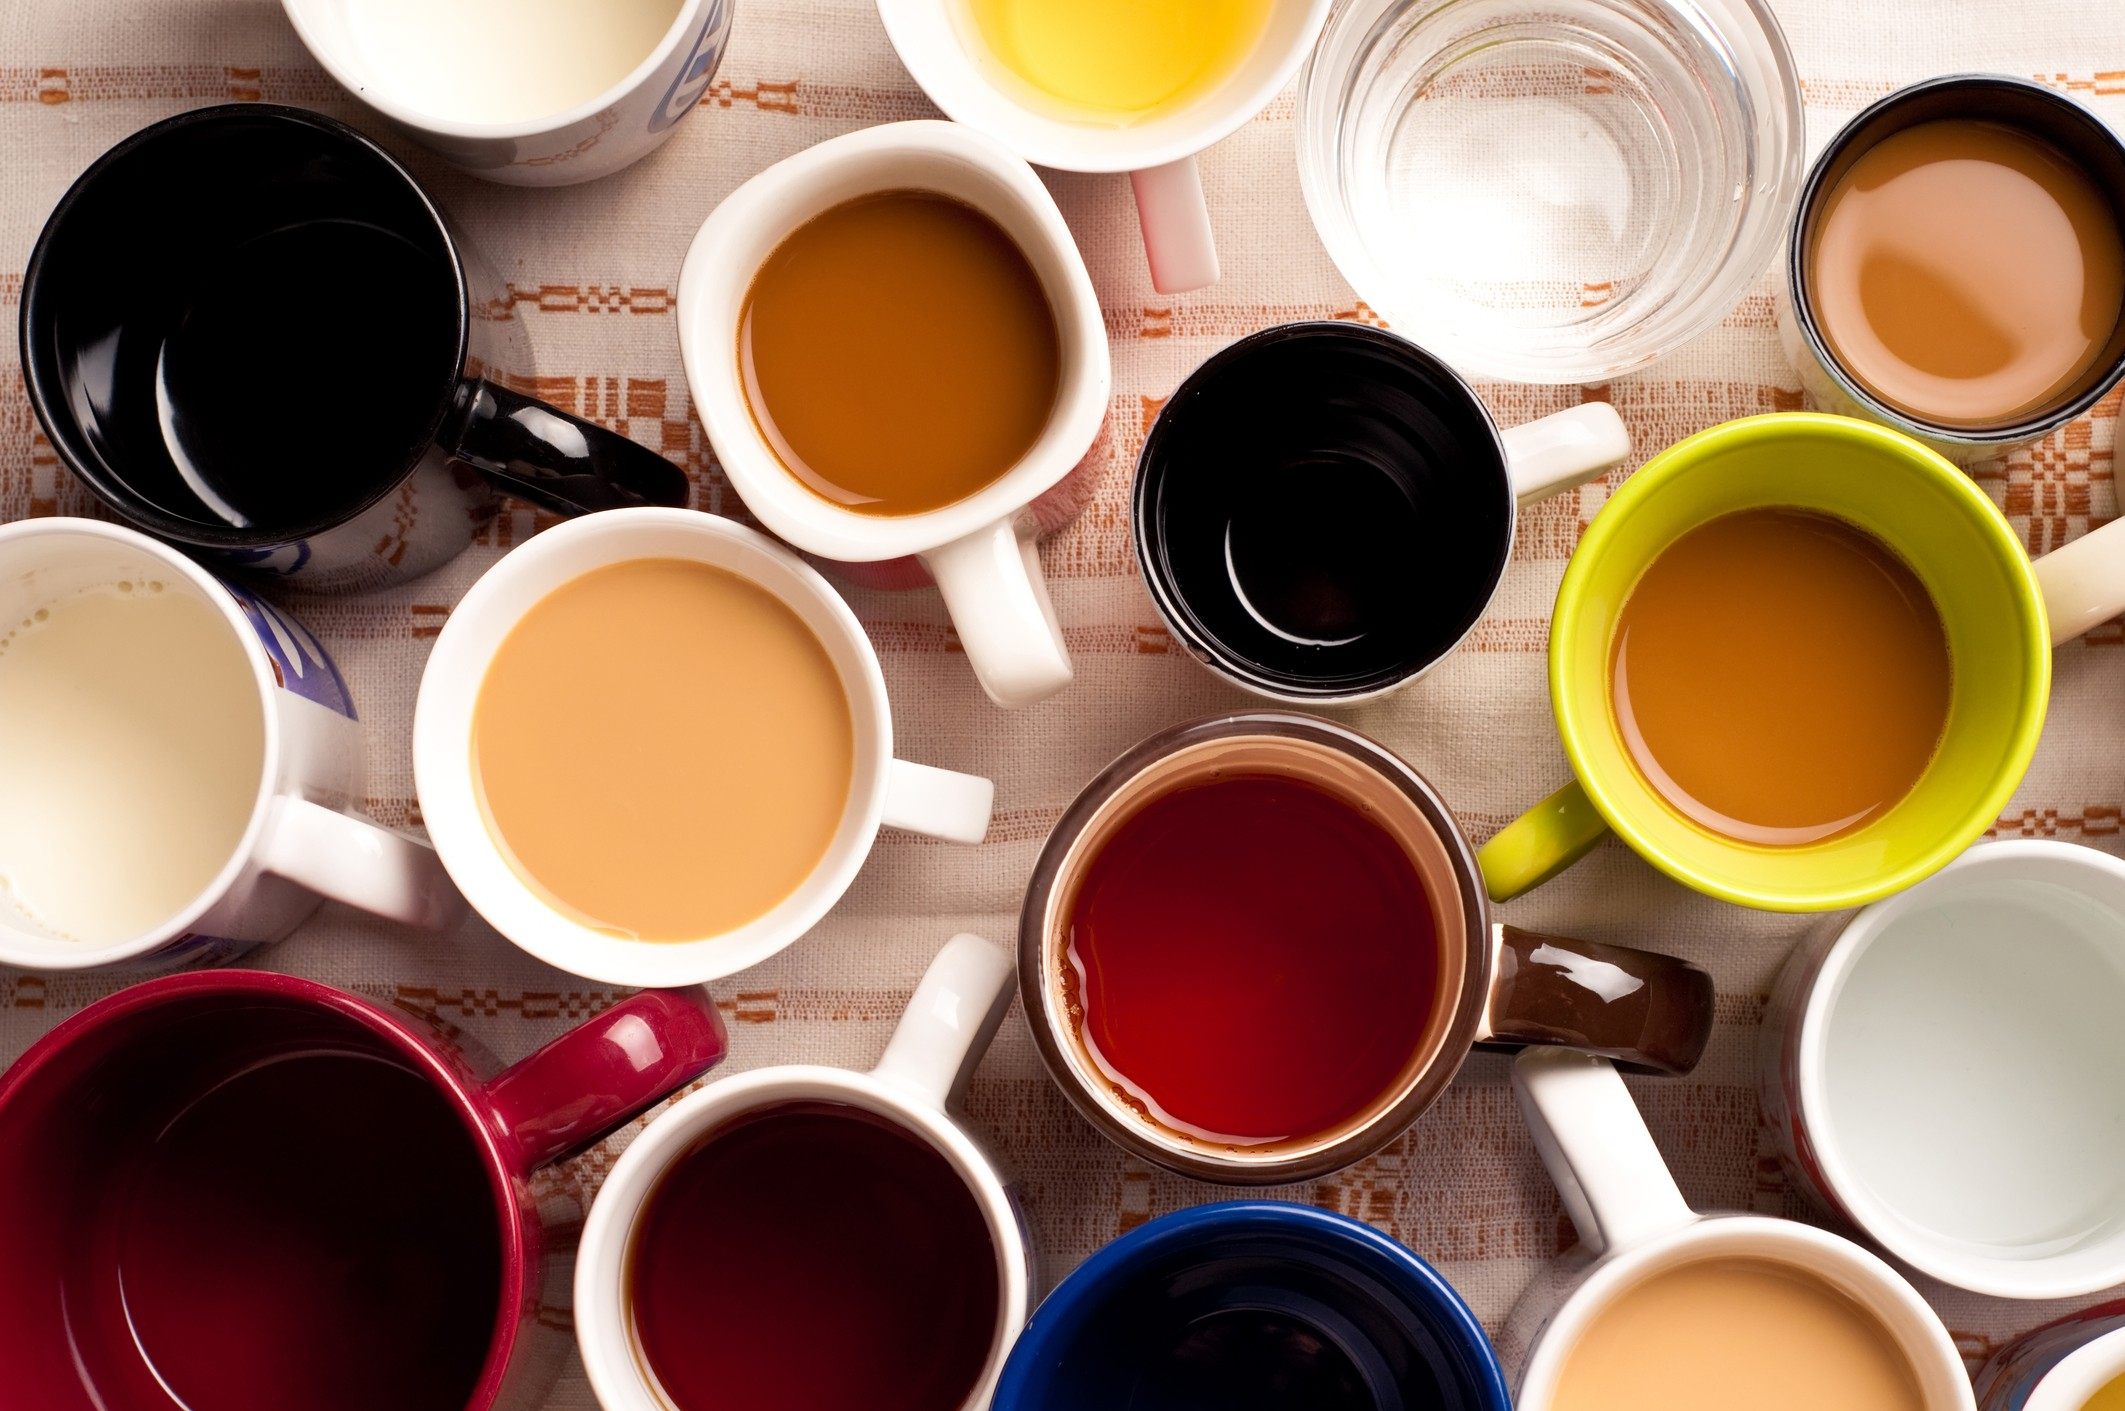 Top view of a few cups of beverages